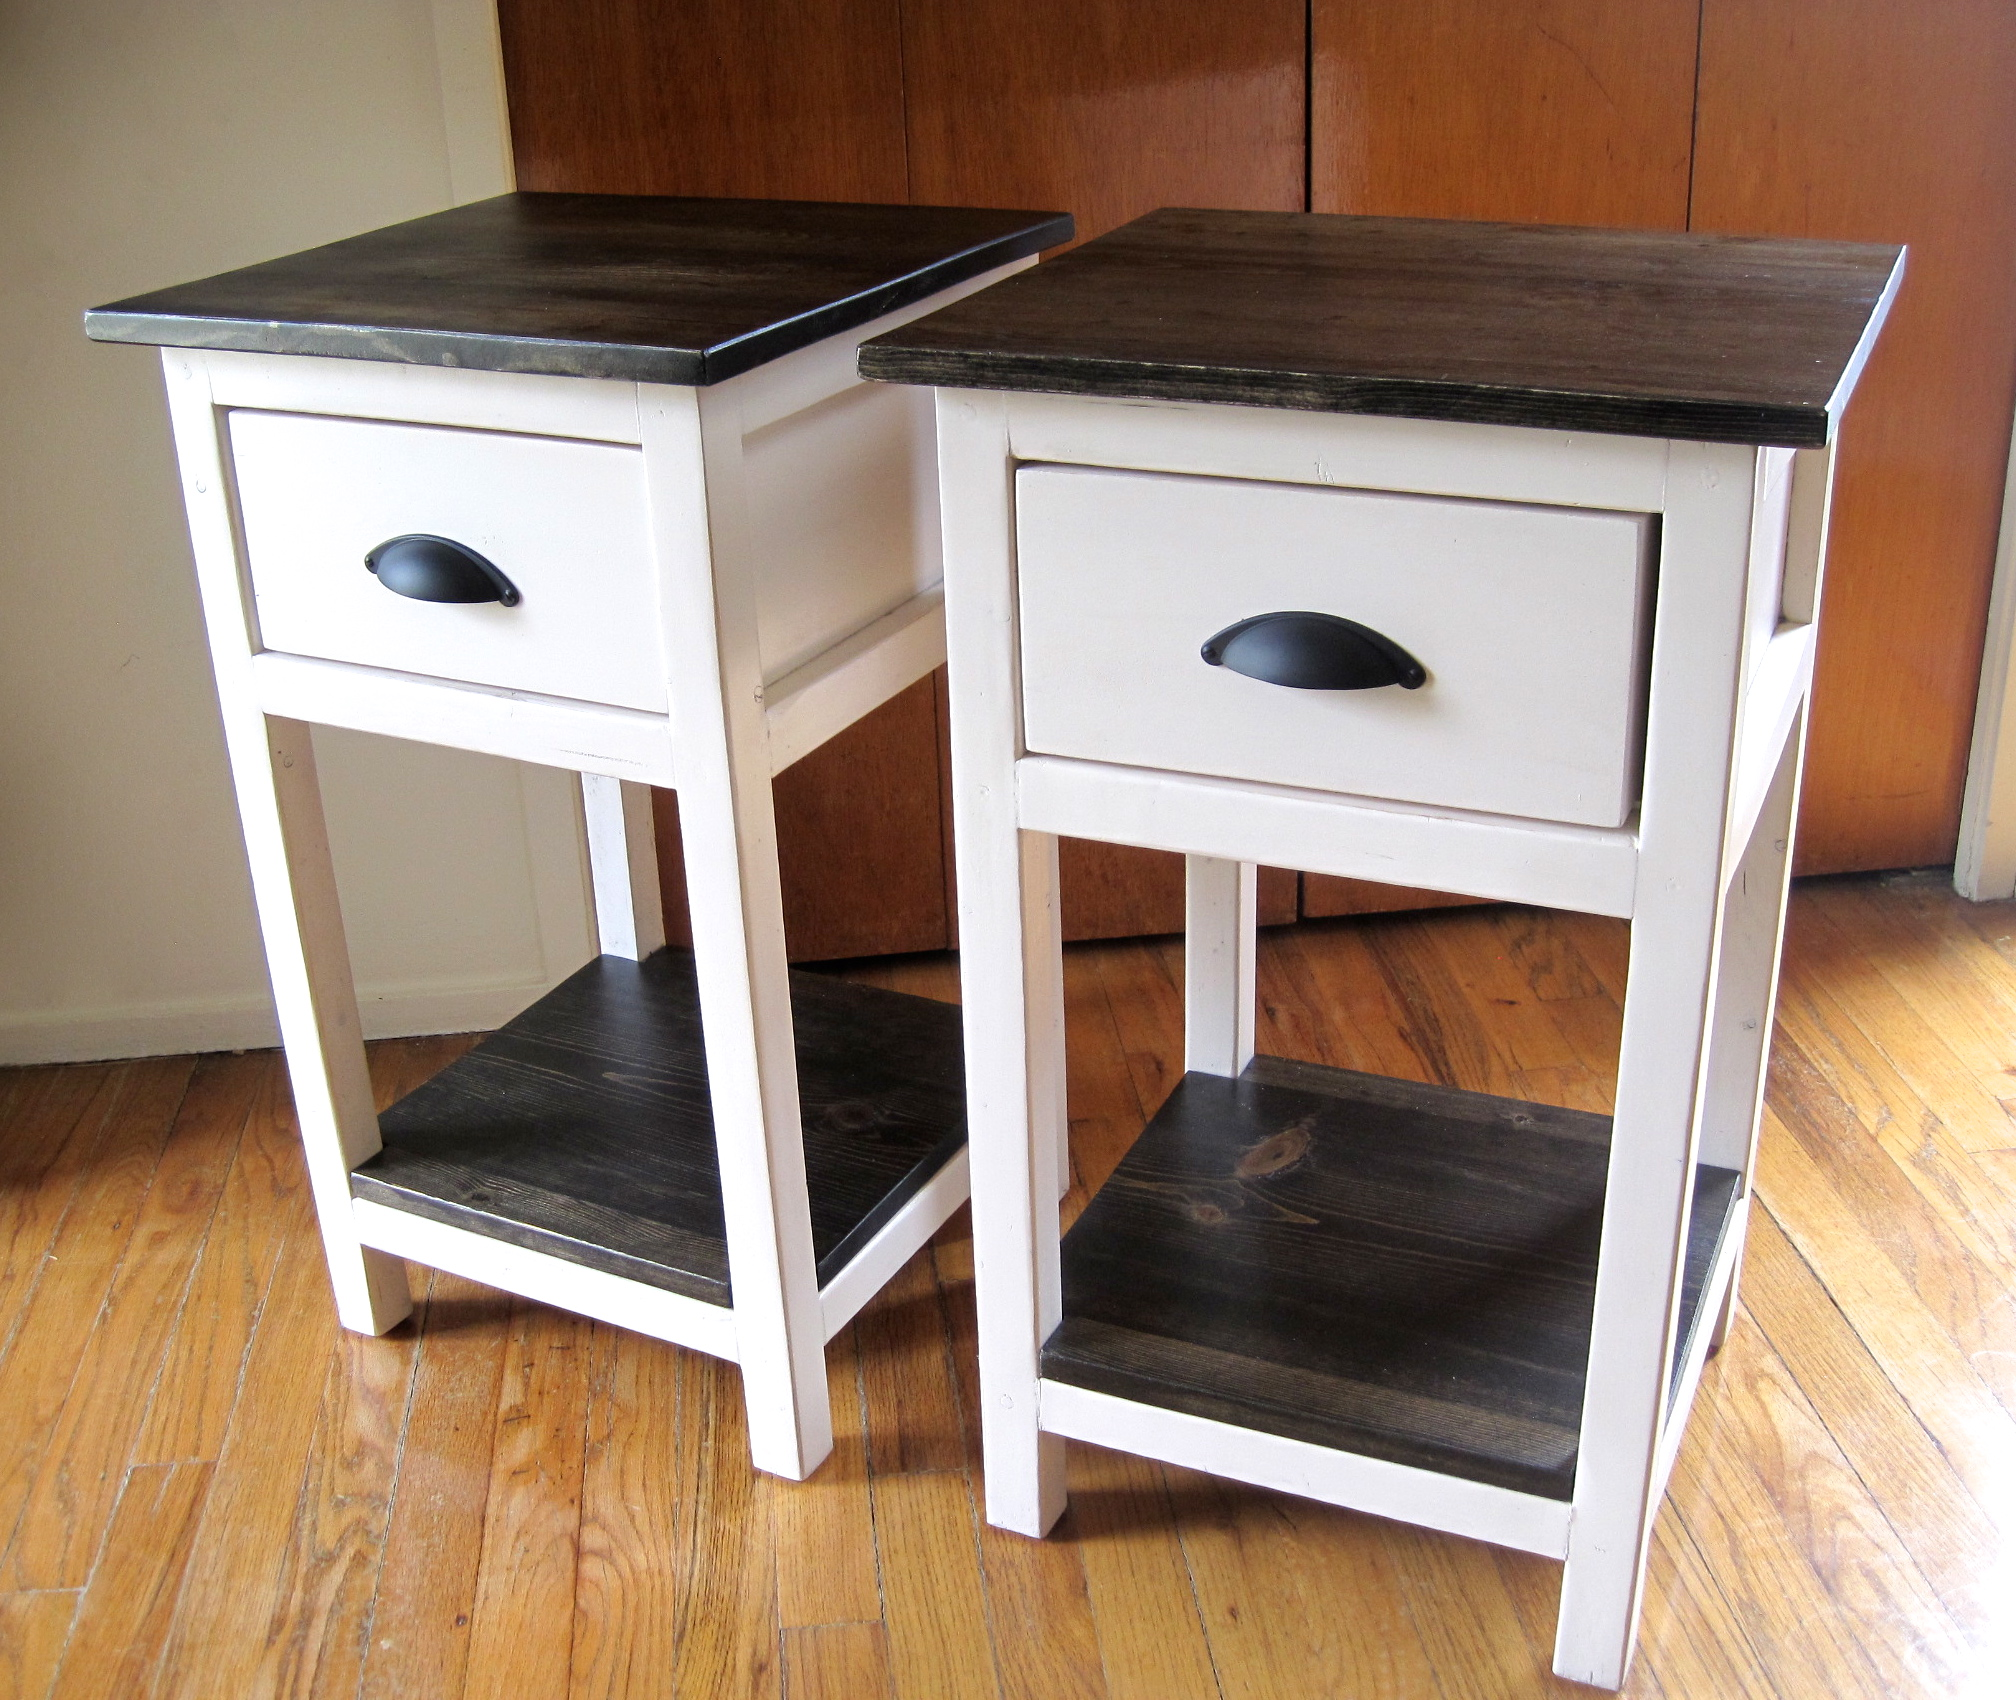 ana white mini farmhouse bedside table diy projects accent pub cloths console clearance dinette linen for round sauder harbor view dining plate mat tall thin end tables solid wood